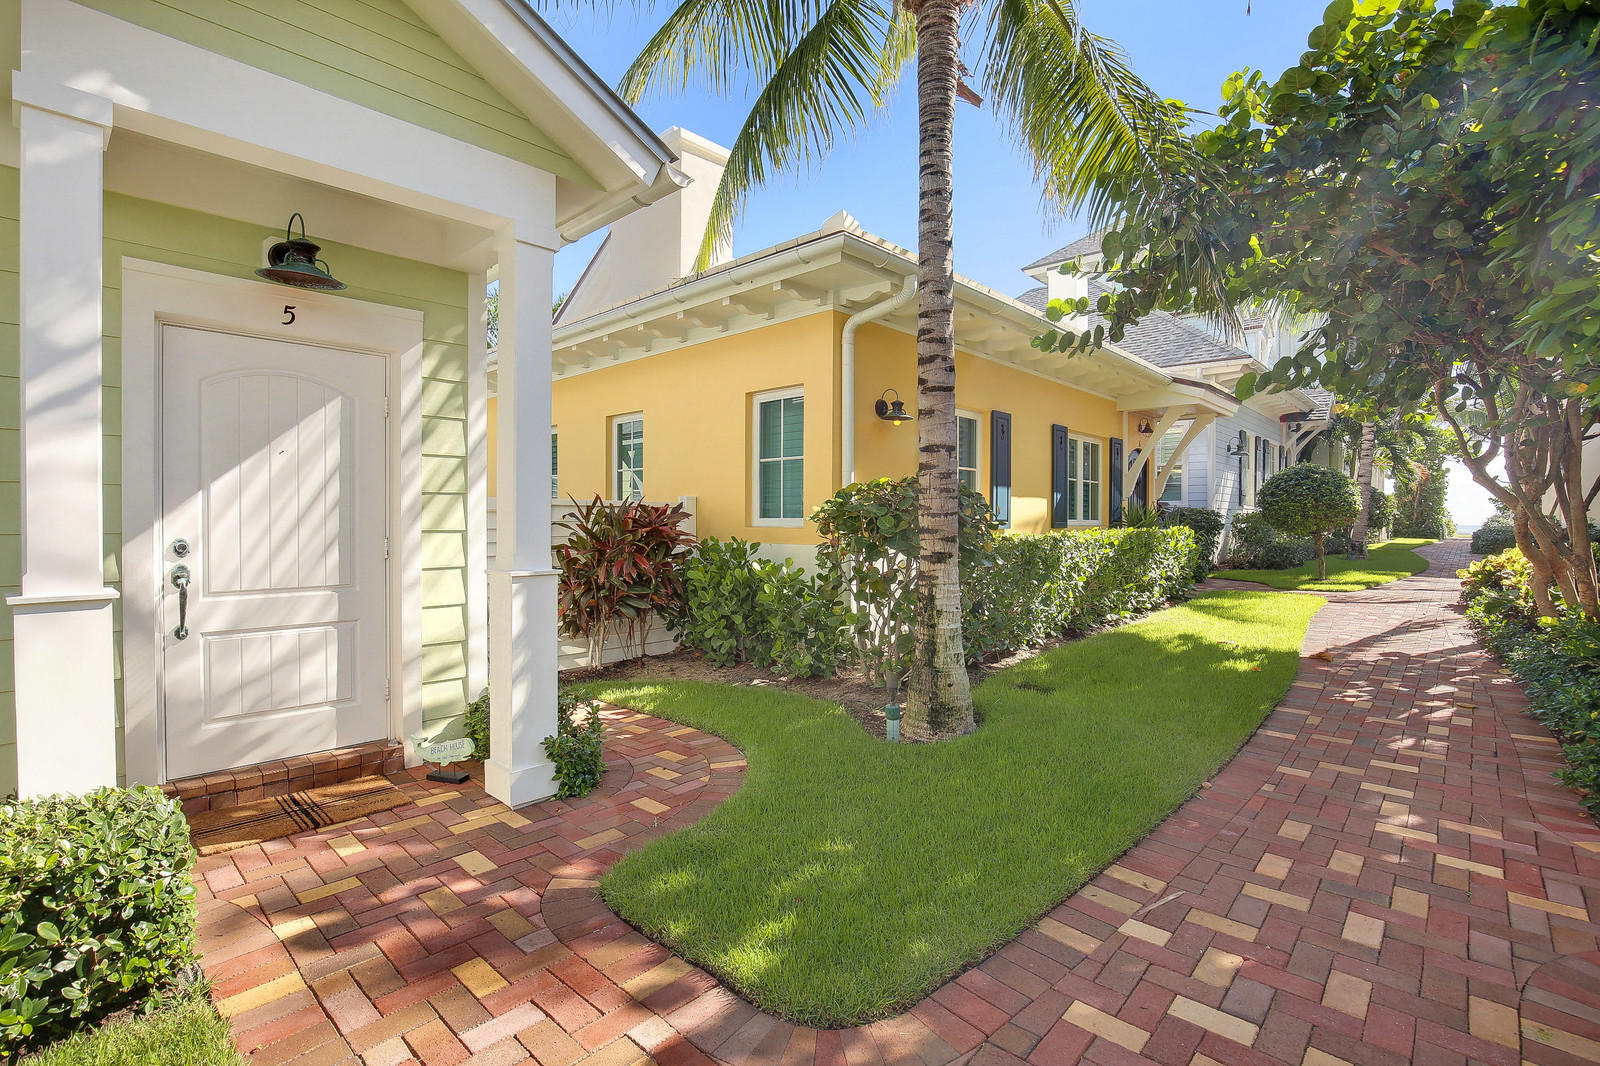 Home for sale in Delray Village By The Sea Delray Beach Florida